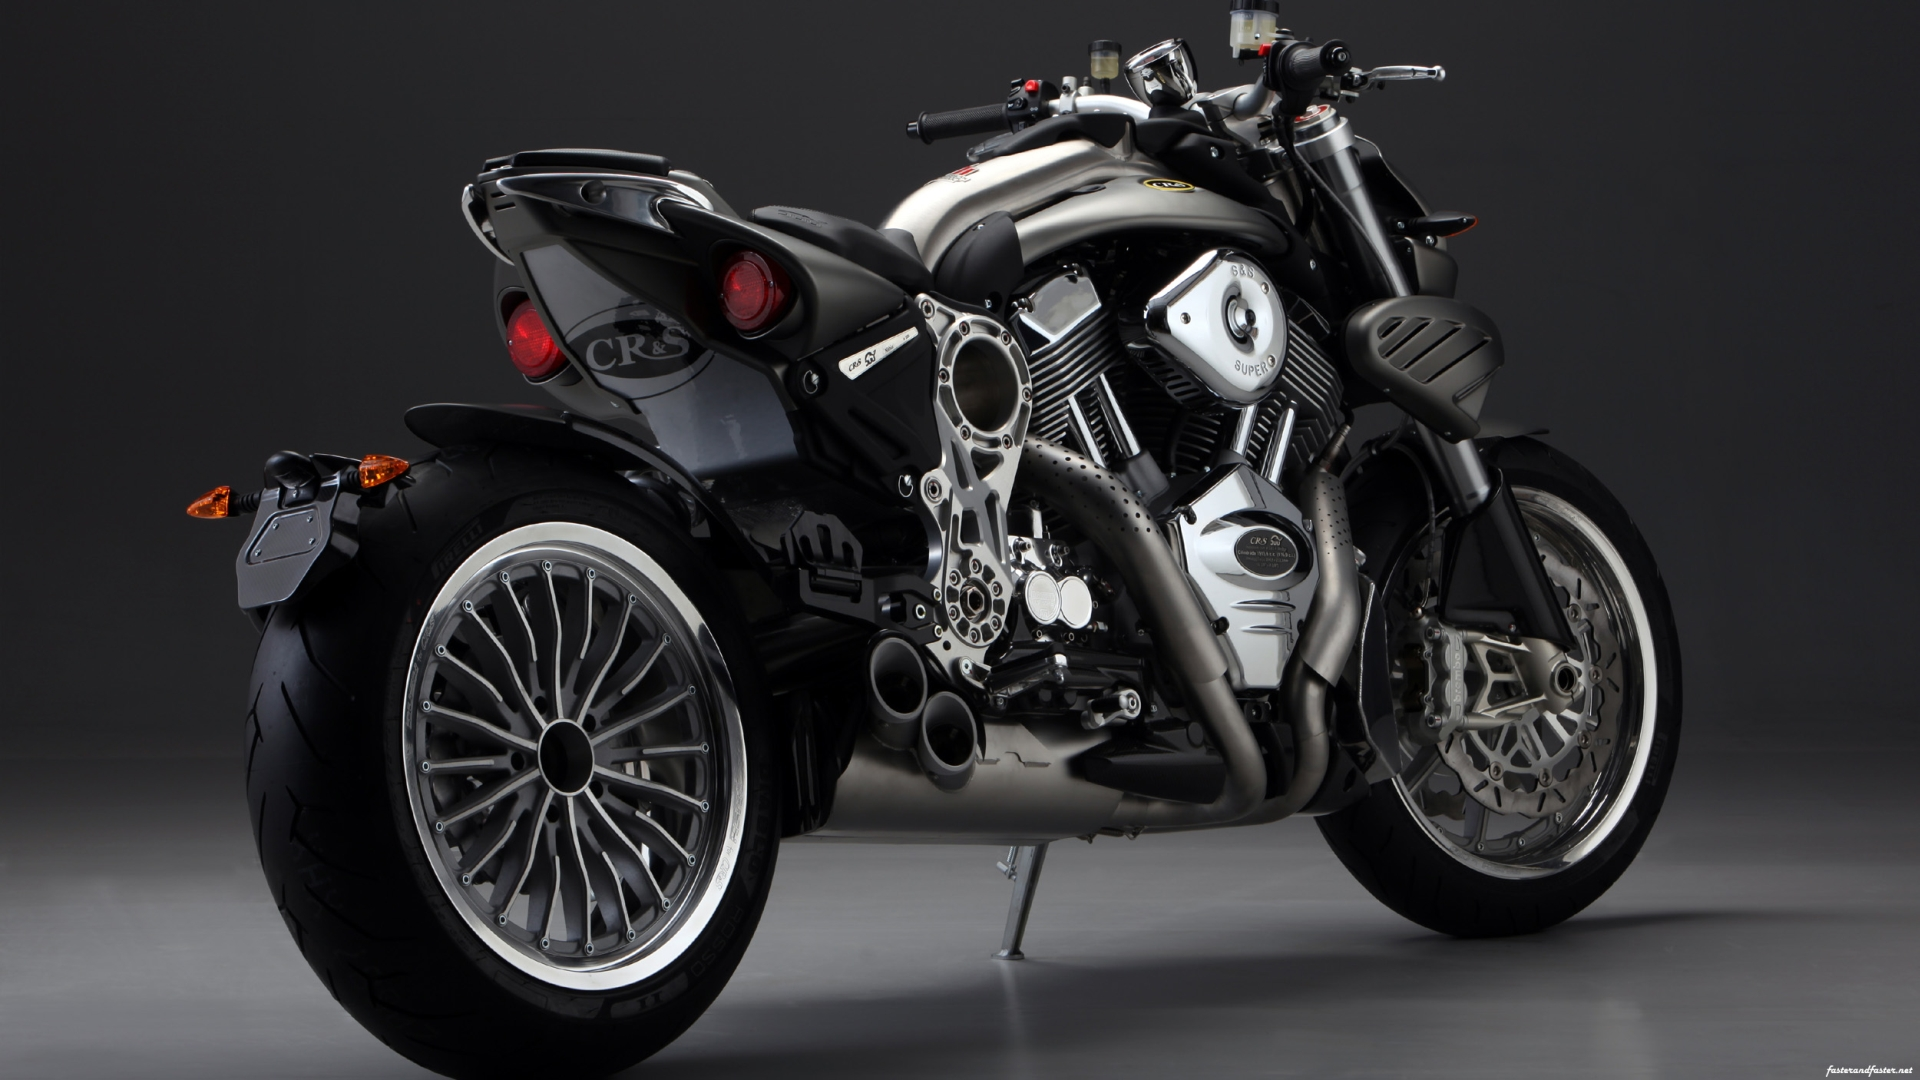 CR&S' Duu Motorcycles Are Awesome and Expensive ...